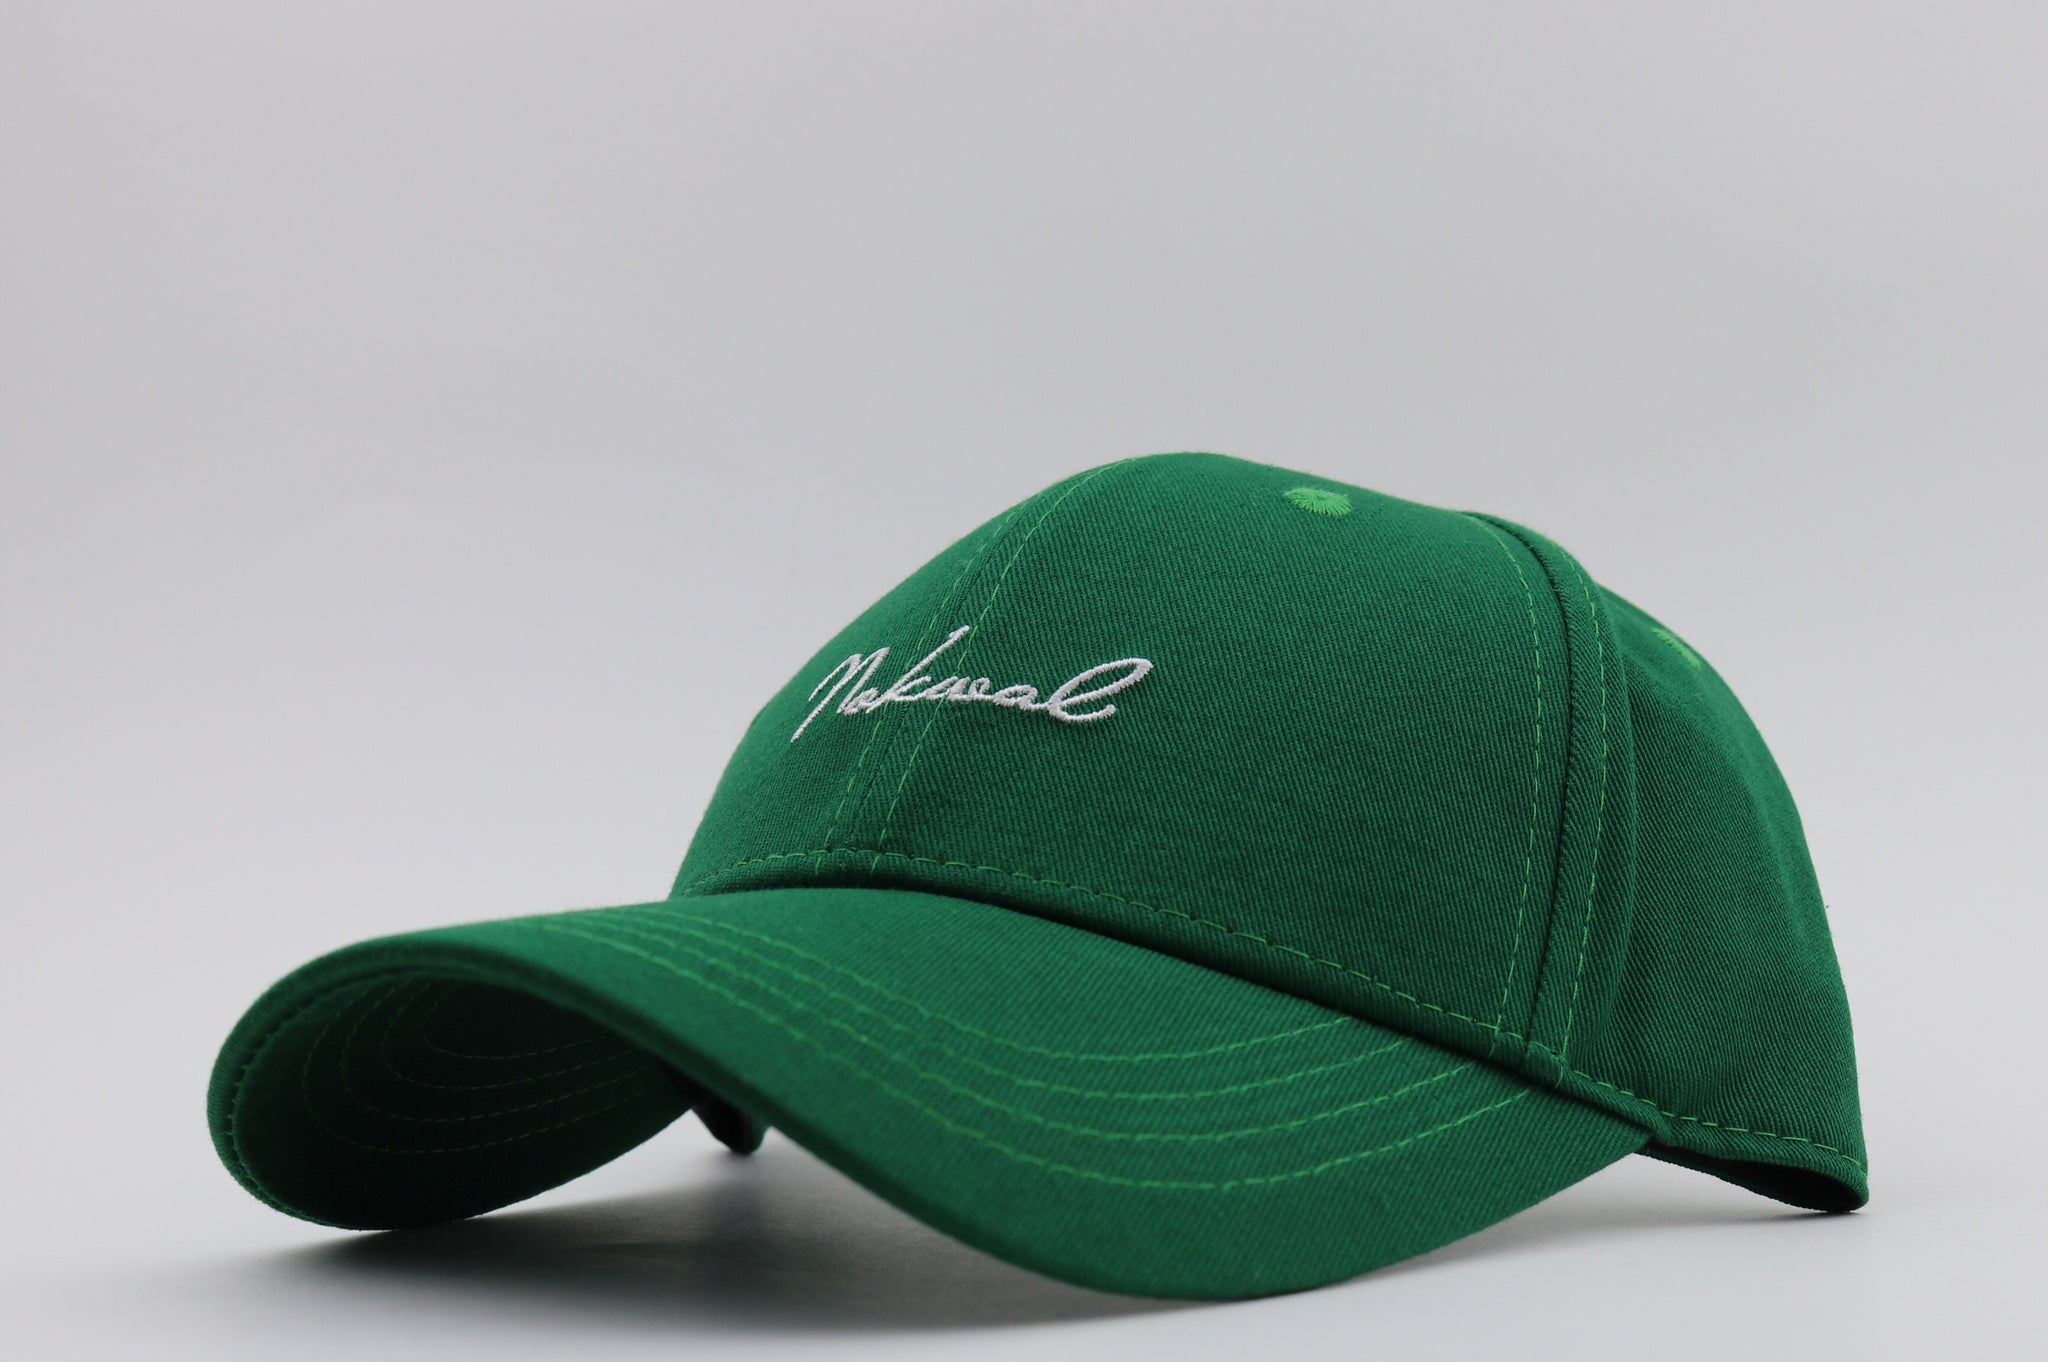 NOKWAL Hat - Leaf Green 6 Panel StrapBack - Nokwal